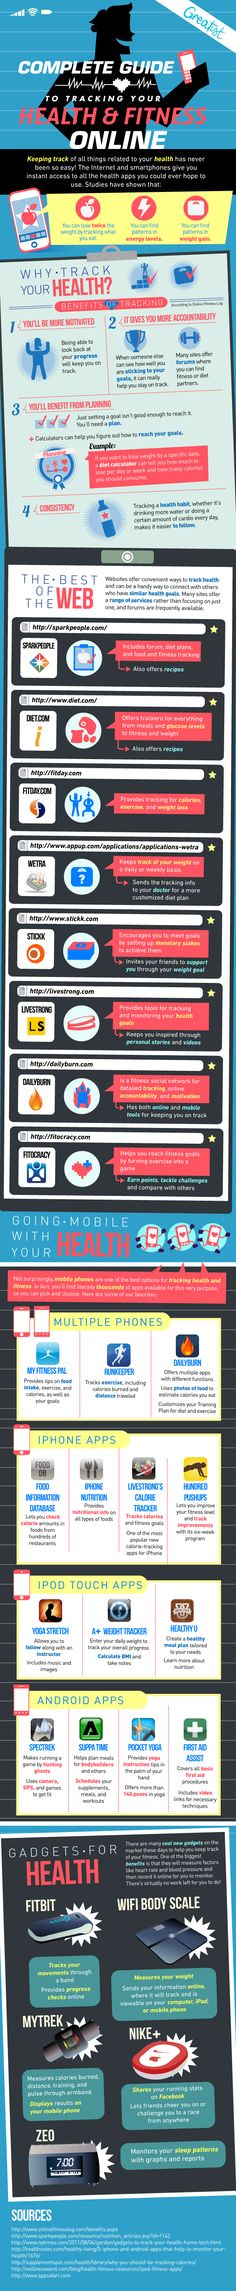 tracking your health and fitness online